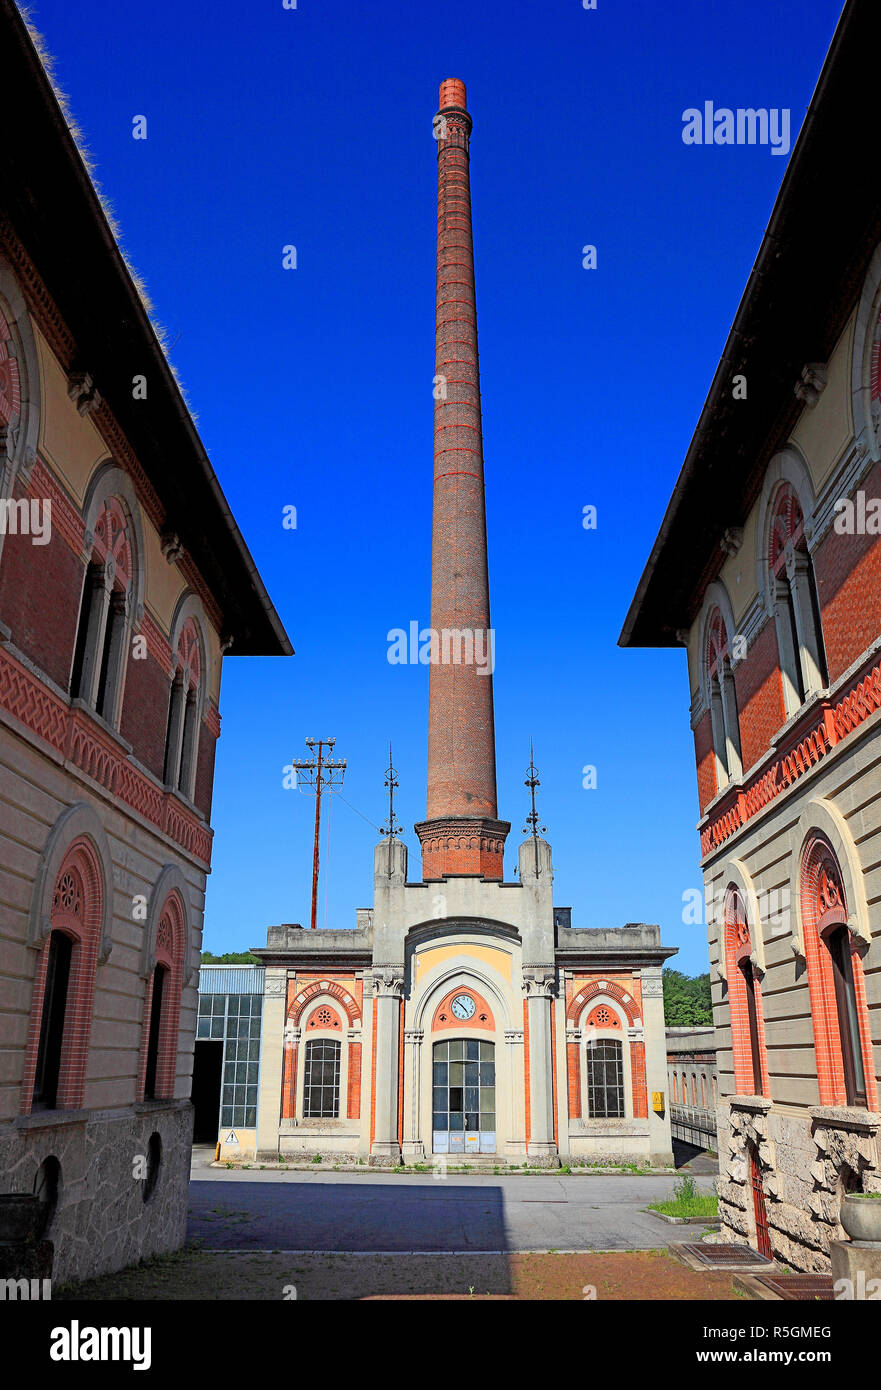 Building of the former textile factory, industrial monument, Crespi d'Adda, Lombardy, Italy Stock Photo